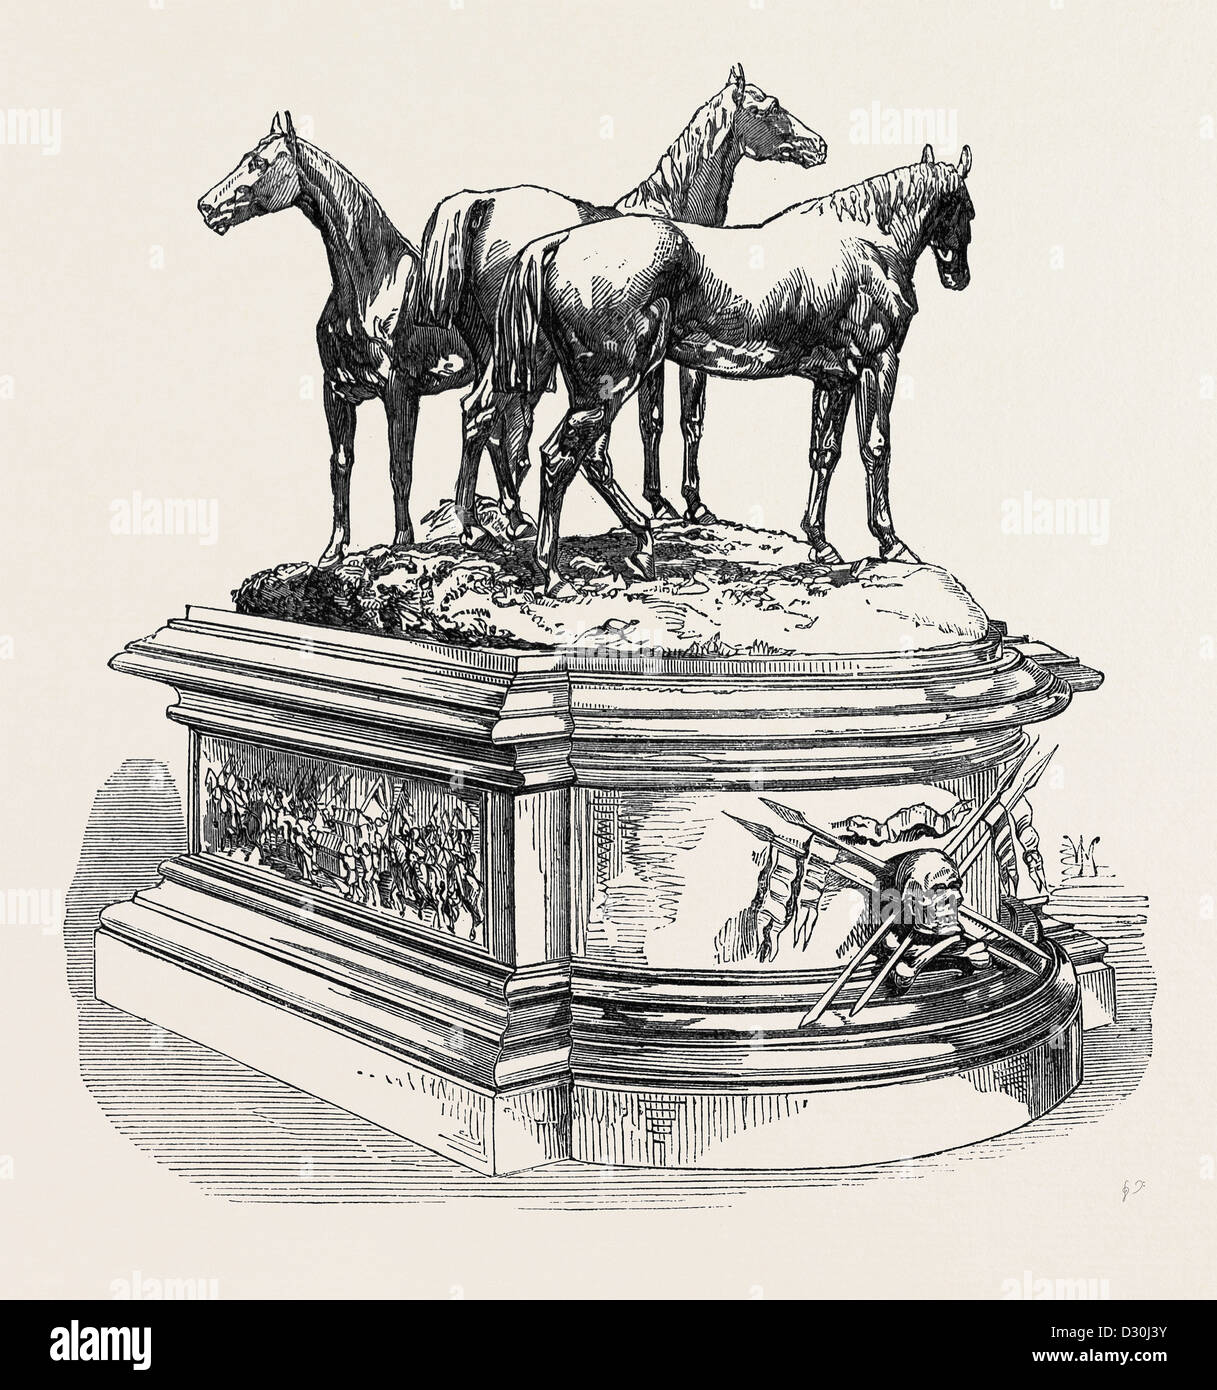 CENTRE ORNAMENT FOR THE MESS TABLE OF THE 17TH LANCERS 1869 - Stock Image